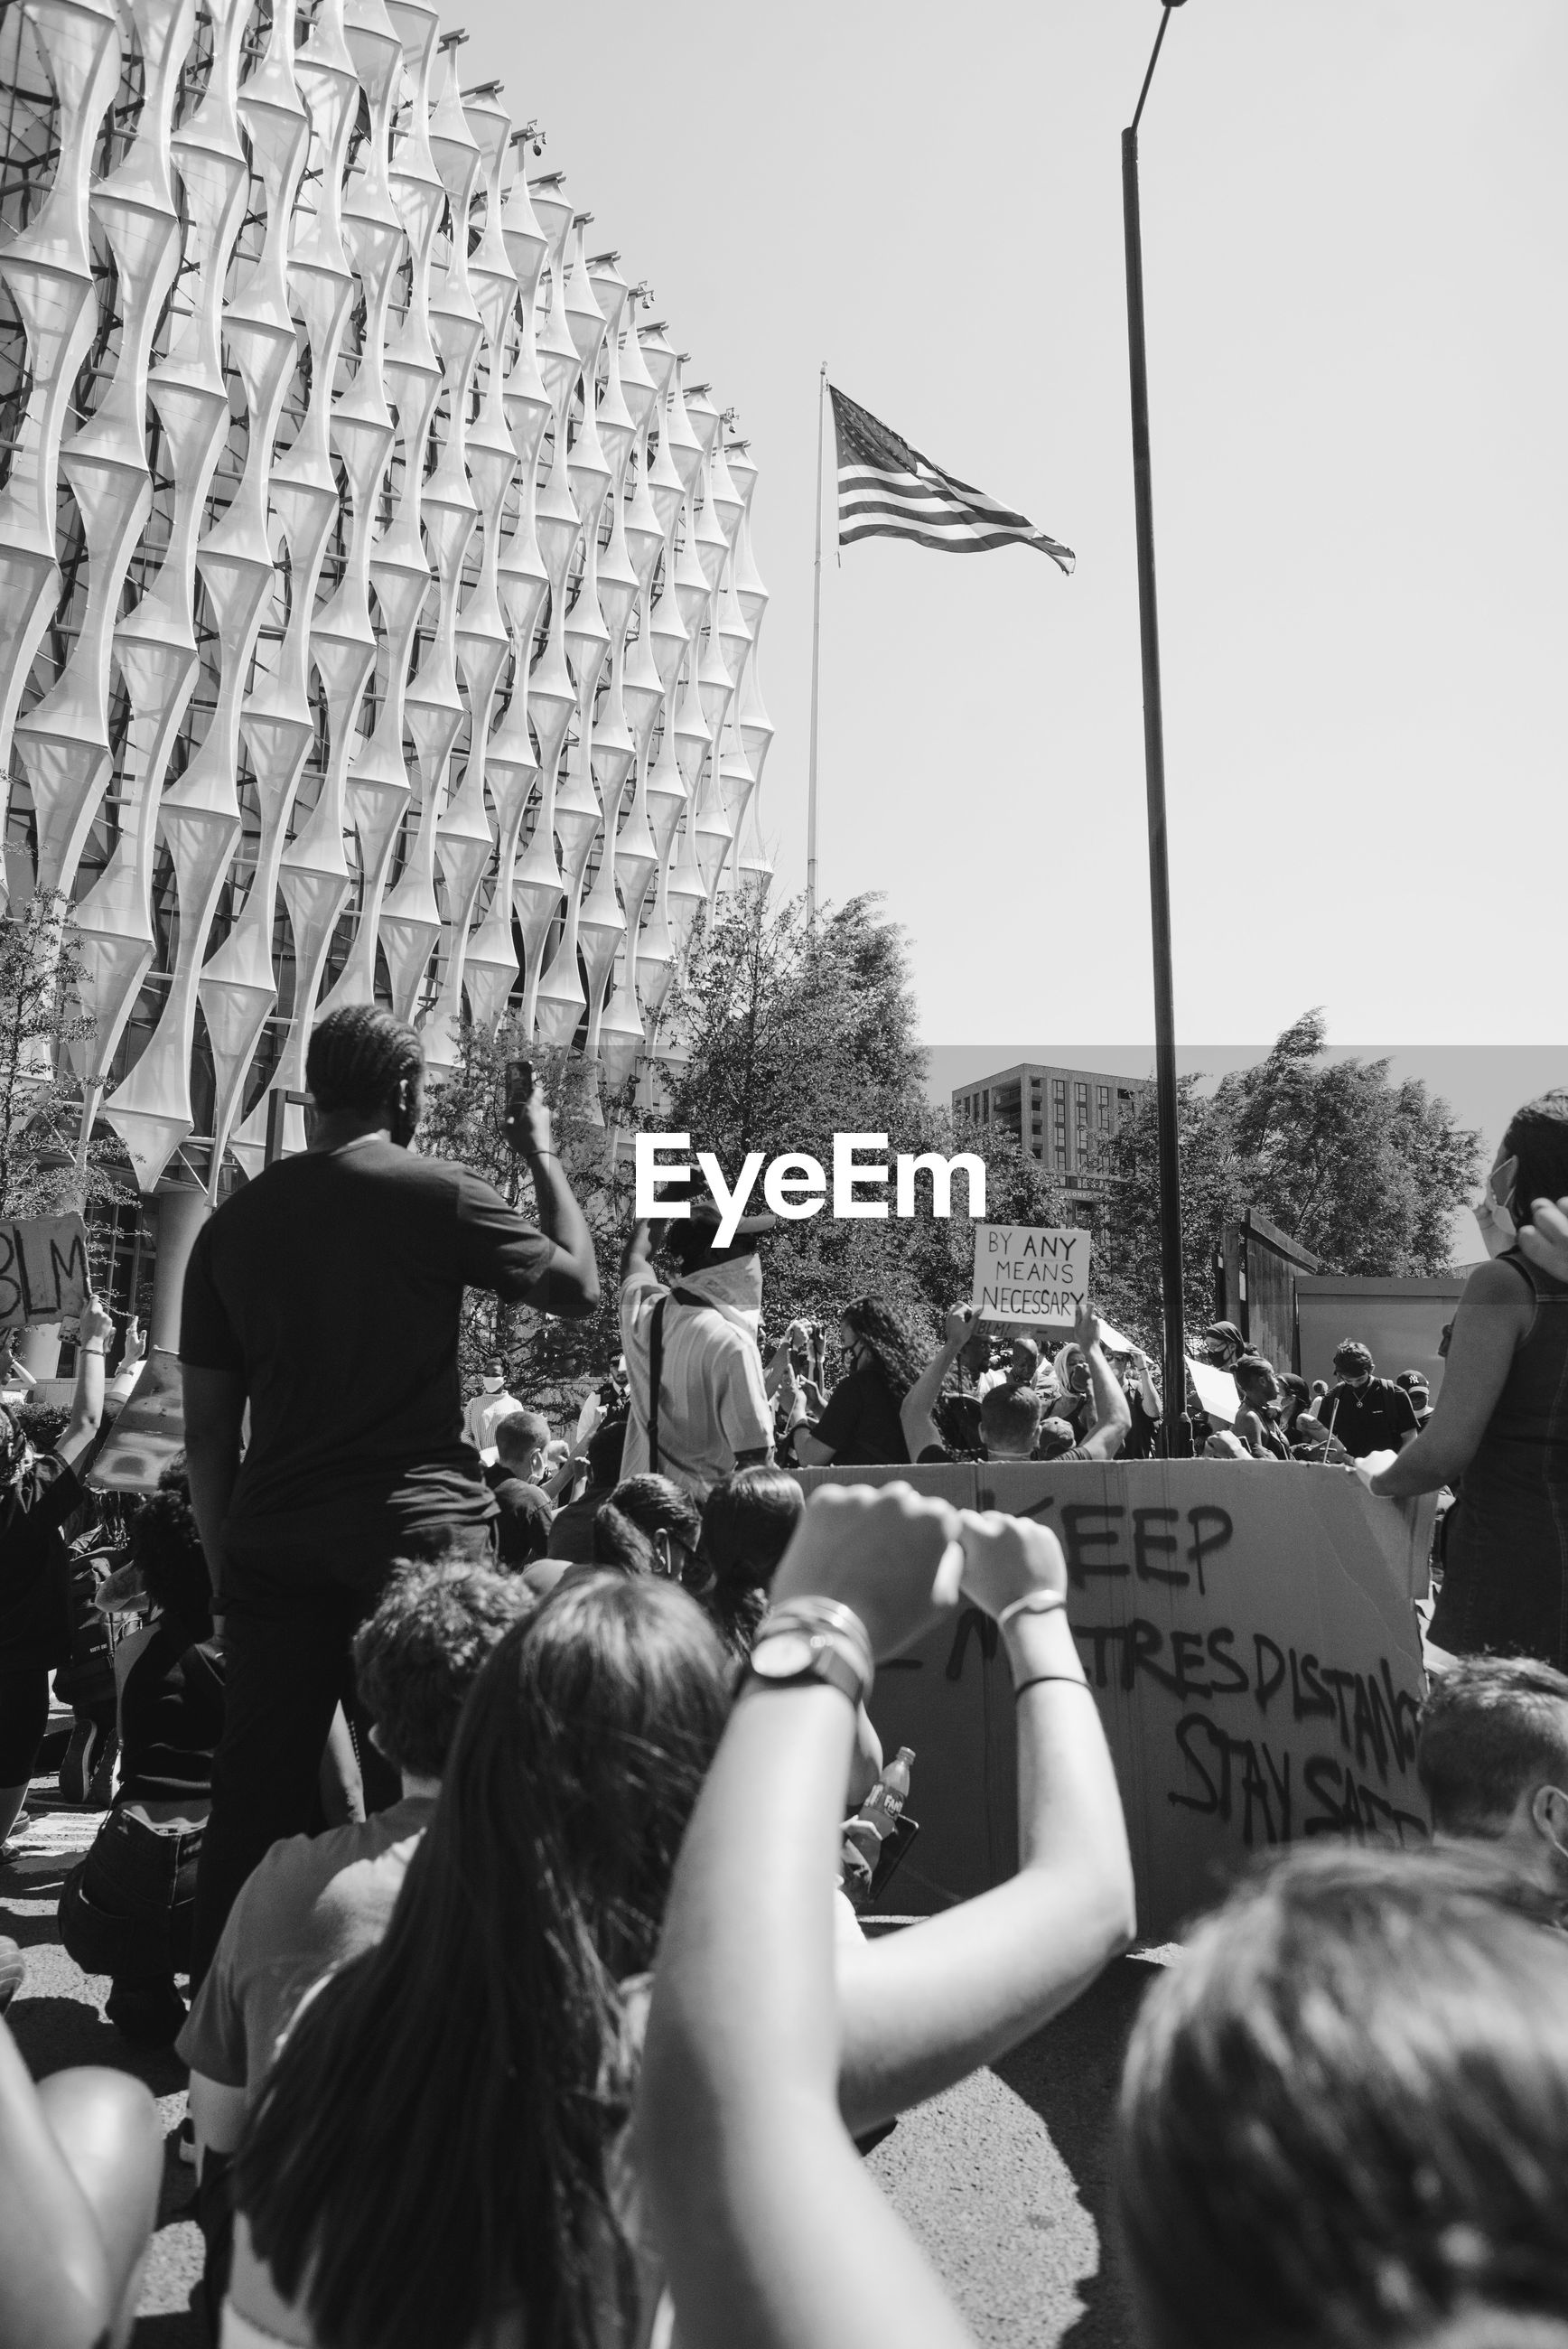 crowd, group of people, flag, large group of people, event, black and white, black, monochrome, monochrome photography, adult, women, architecture, men, day, arts culture and entertainment, sky, celebration, patriotism, togetherness, outdoors, nature, rear view, person, audience, city, lifestyles, leisure activity